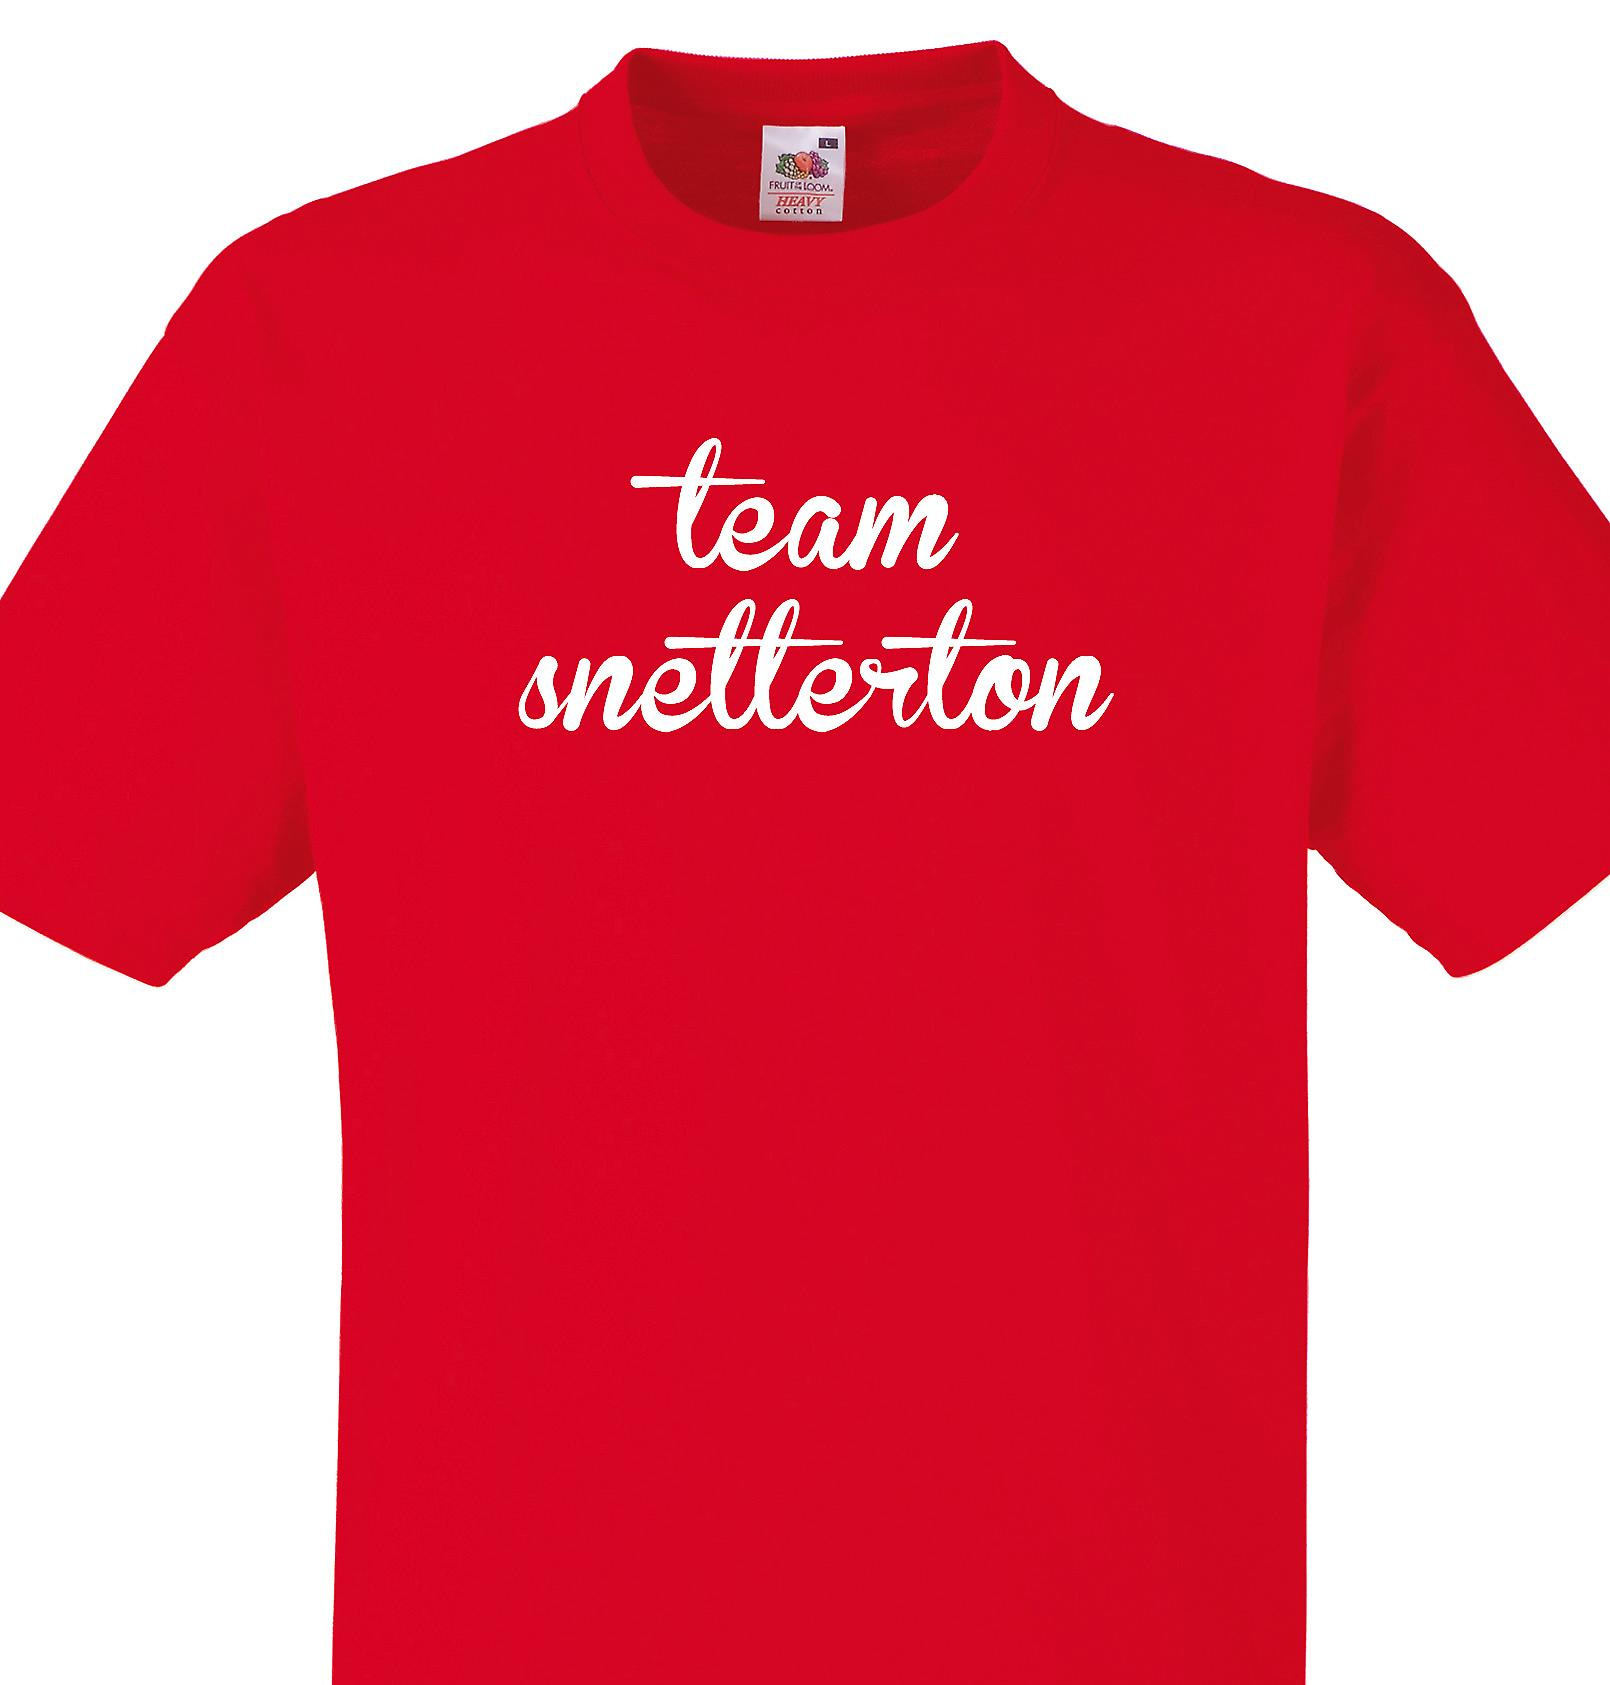 Team Snetterton Red T shirt